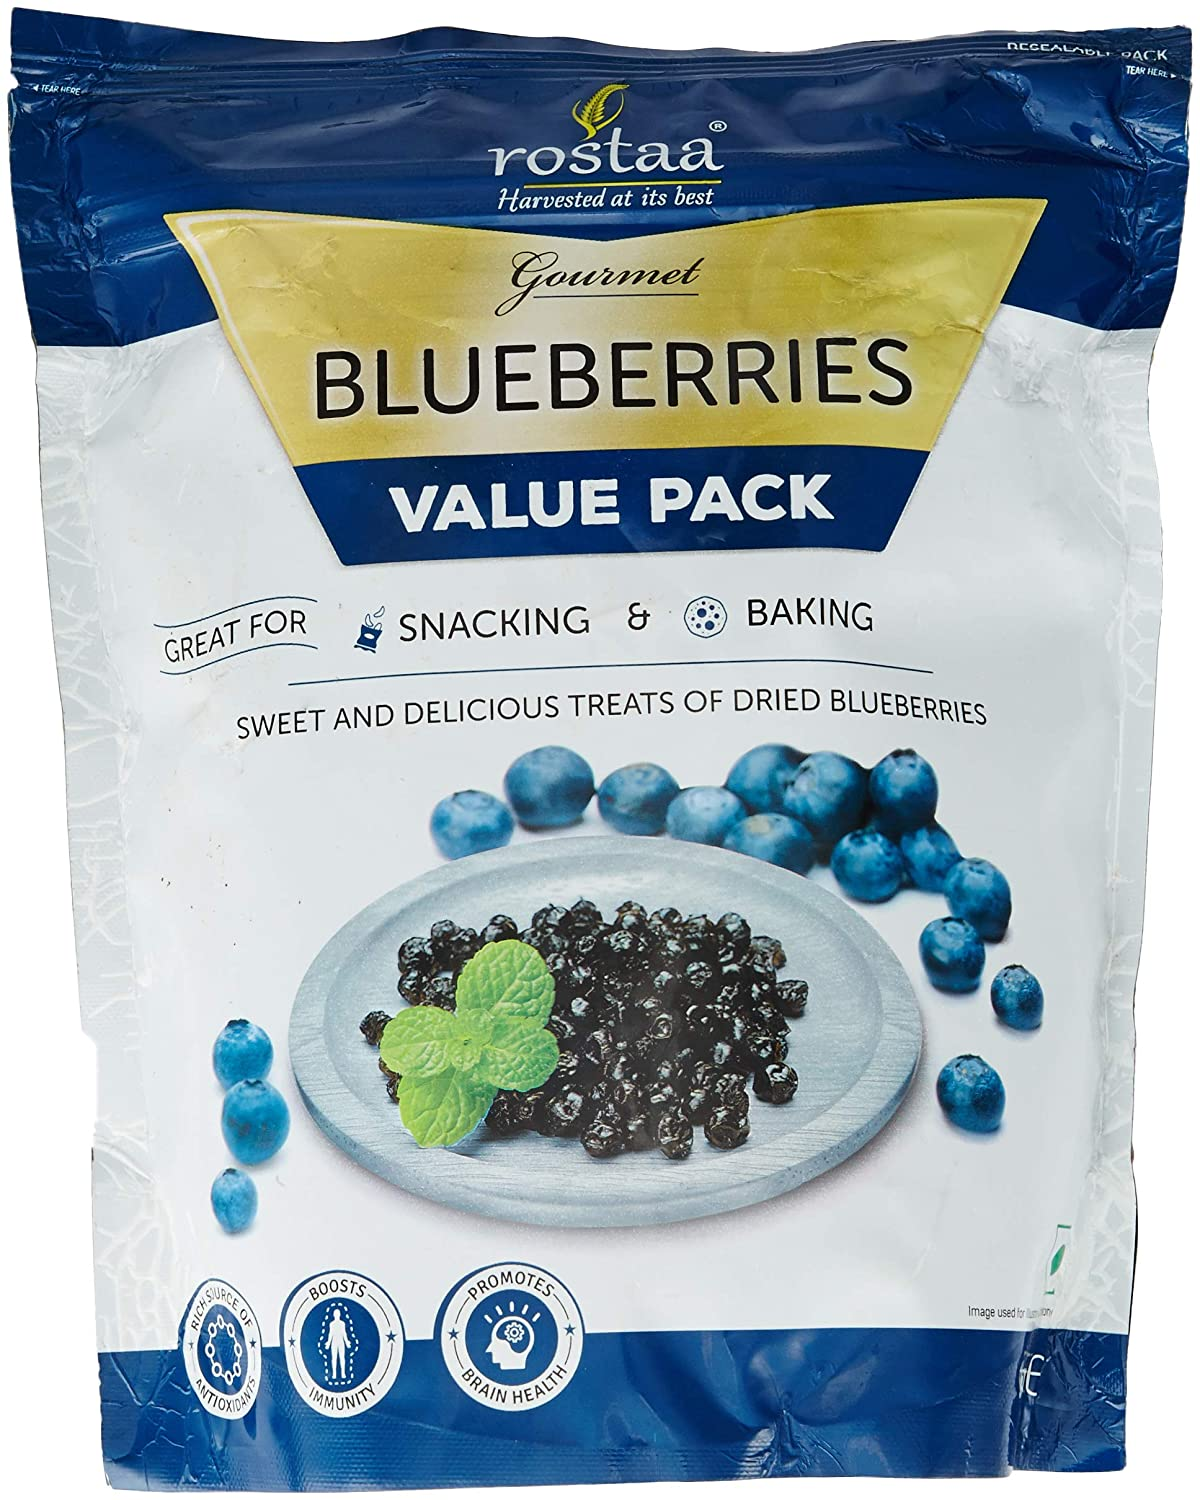 Rostaa Value Pack, Blueberries, 1kg